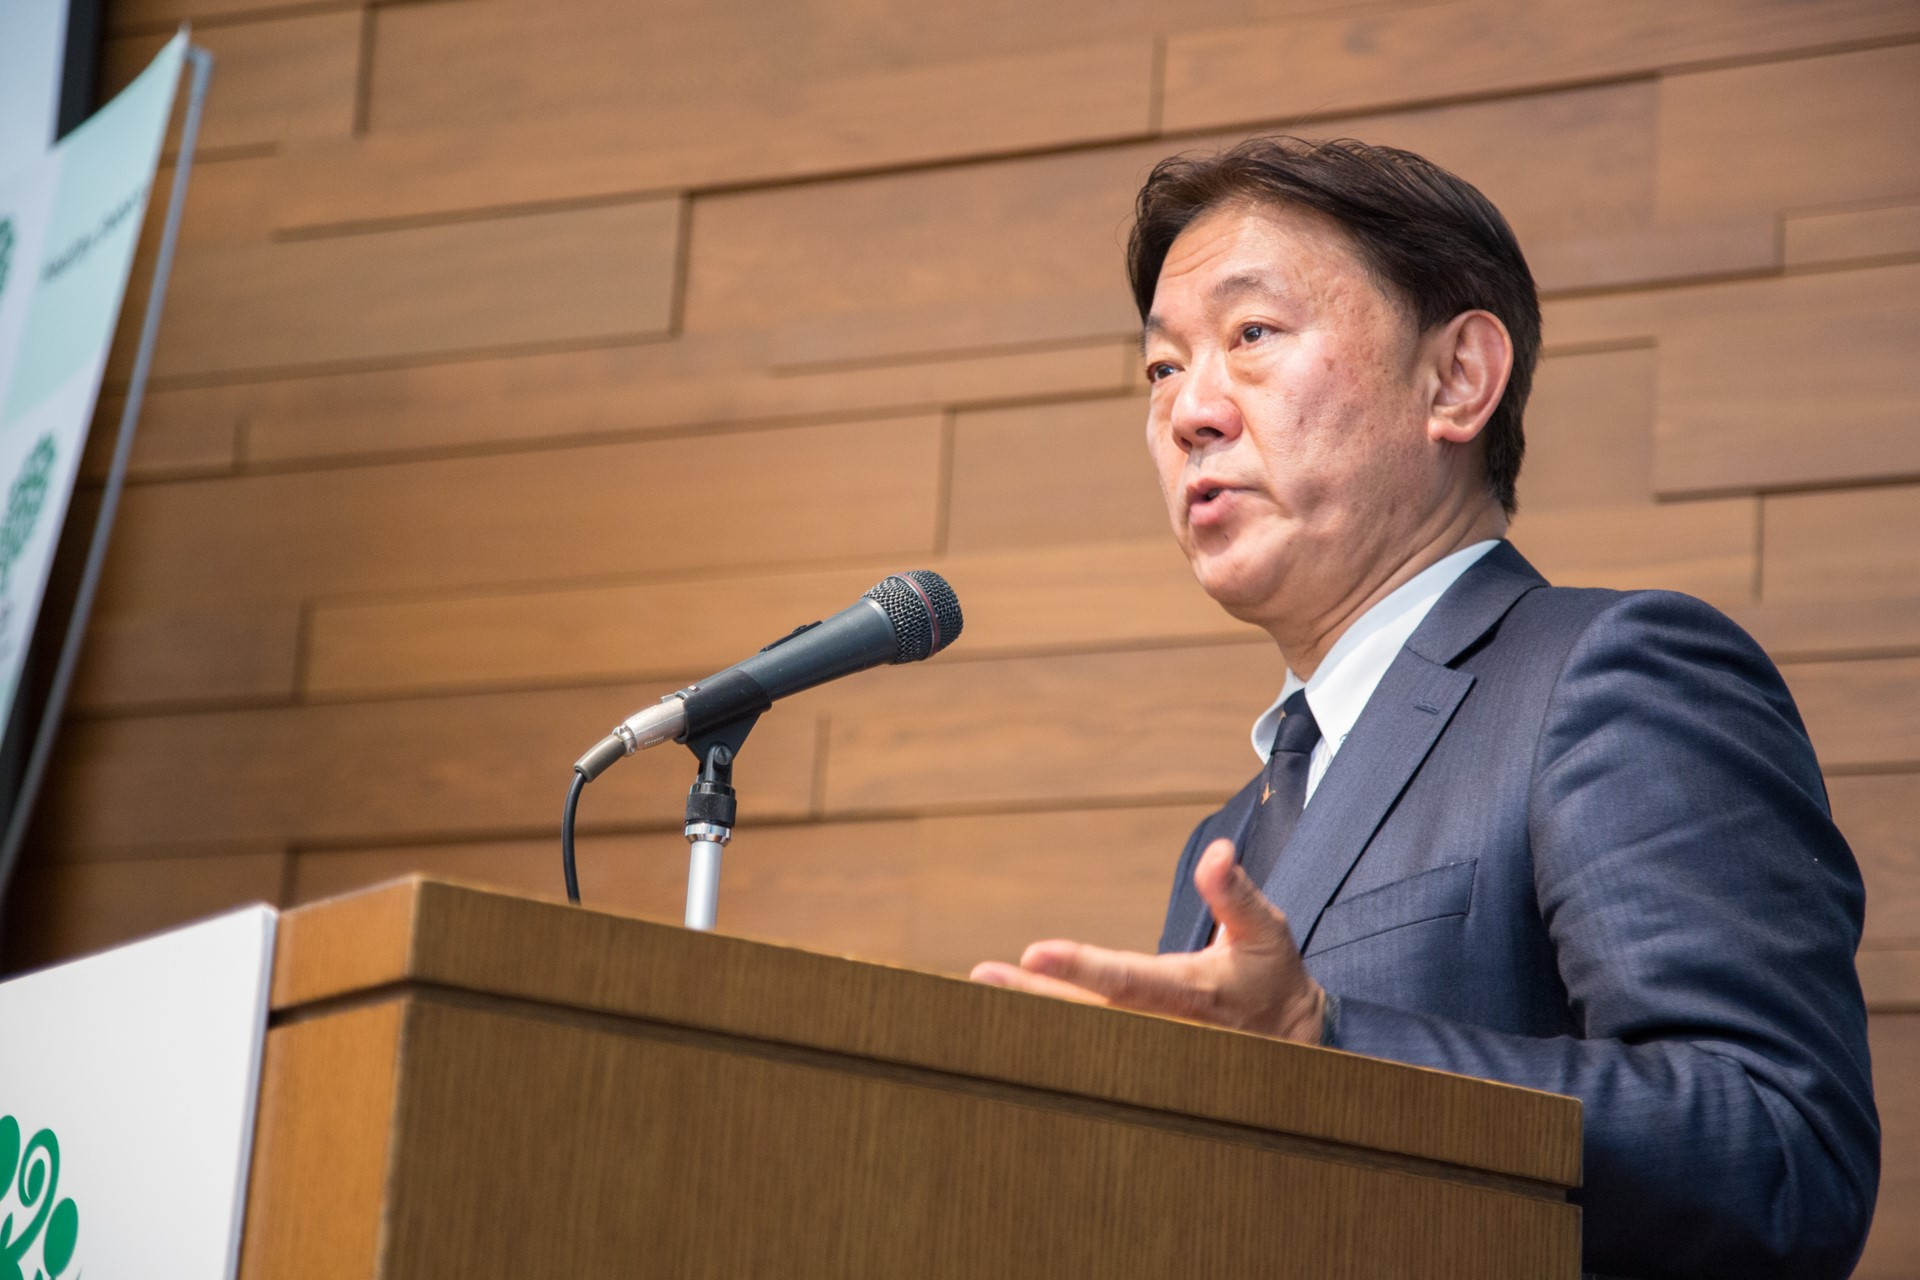 """Keynote Lecture I """"Innovation and Sustainability: Japan's Challenge"""" Dr. Yasuhiro Suzuki(Director General of the Health Insurance Bureau in Ministry of Health, Labour and Welfare (MHLW))"""